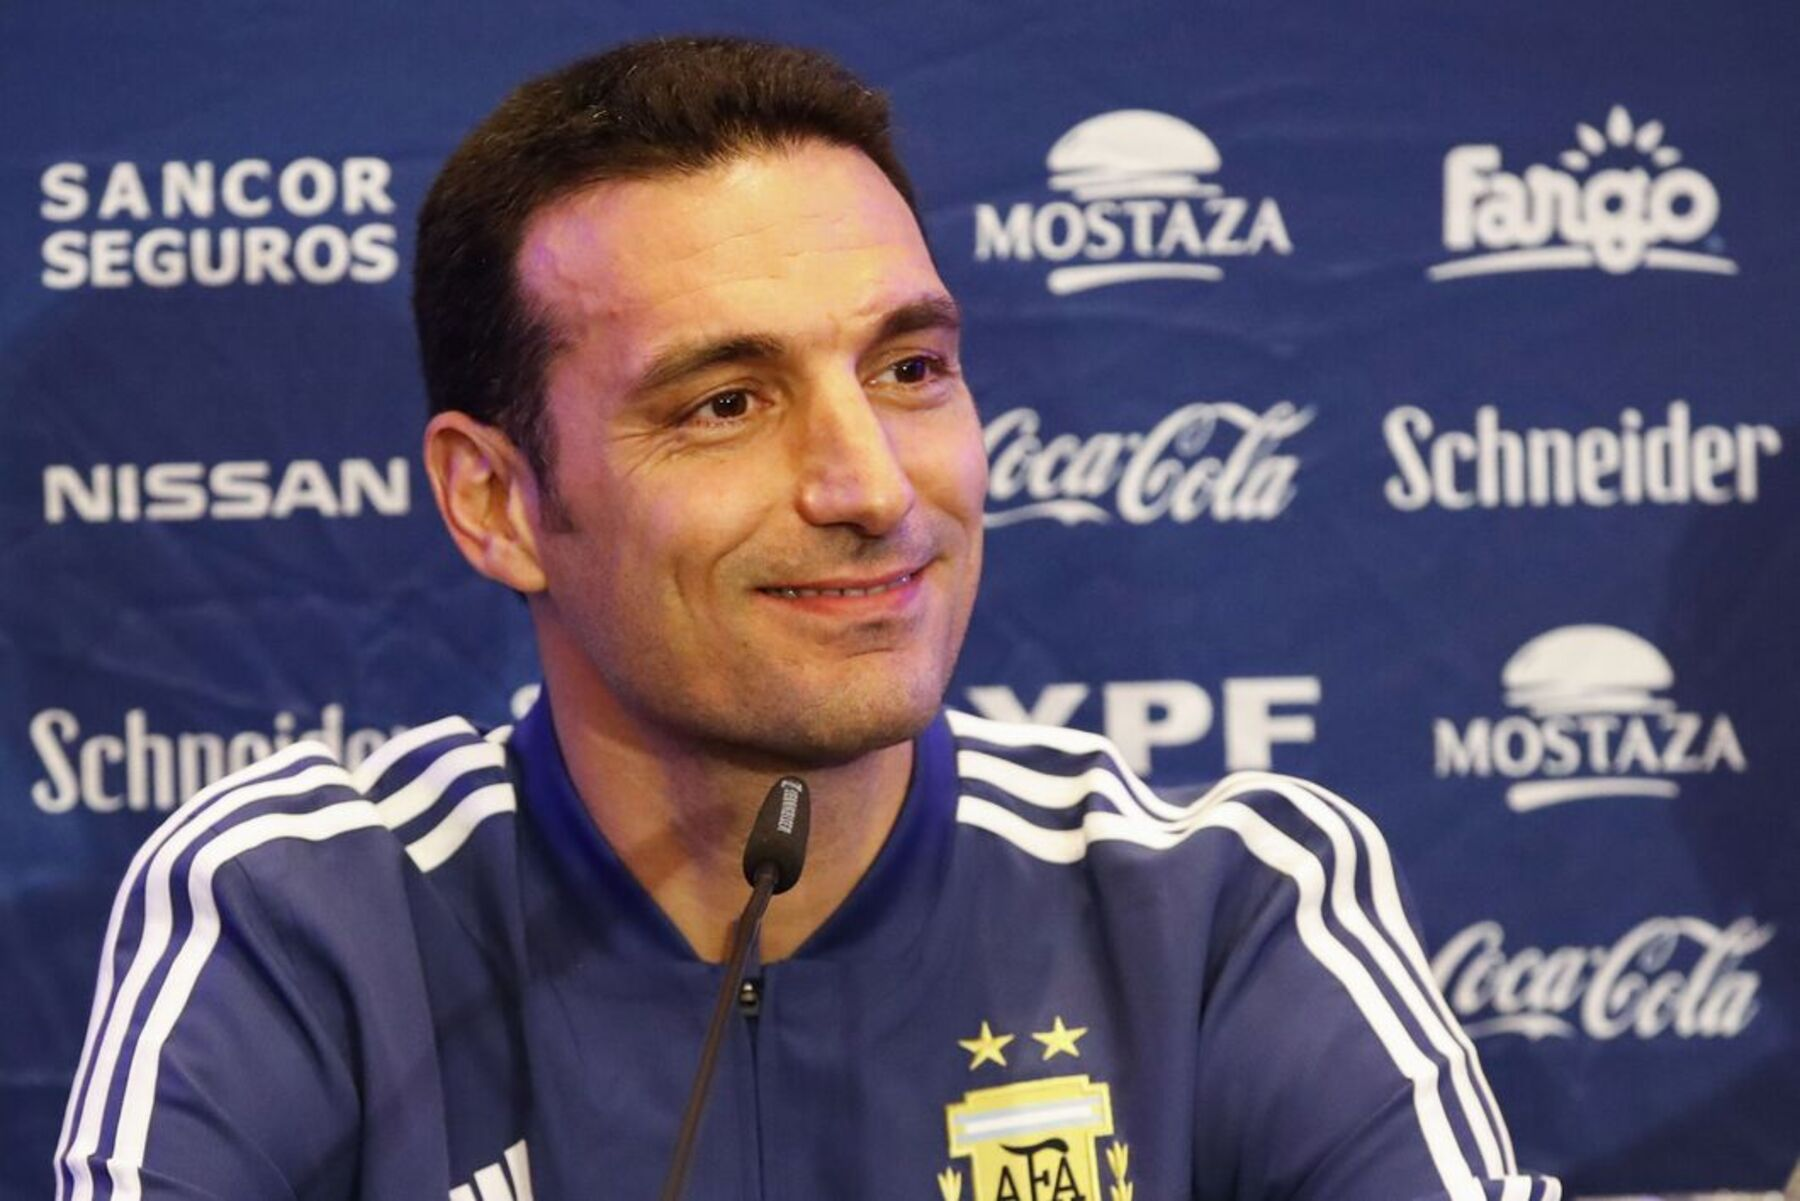 Lionel Scaloni Responds to Di Maria's Criticism Over Being Left Out of Argentina's Squad List for October International Fixtures - PSG Talk